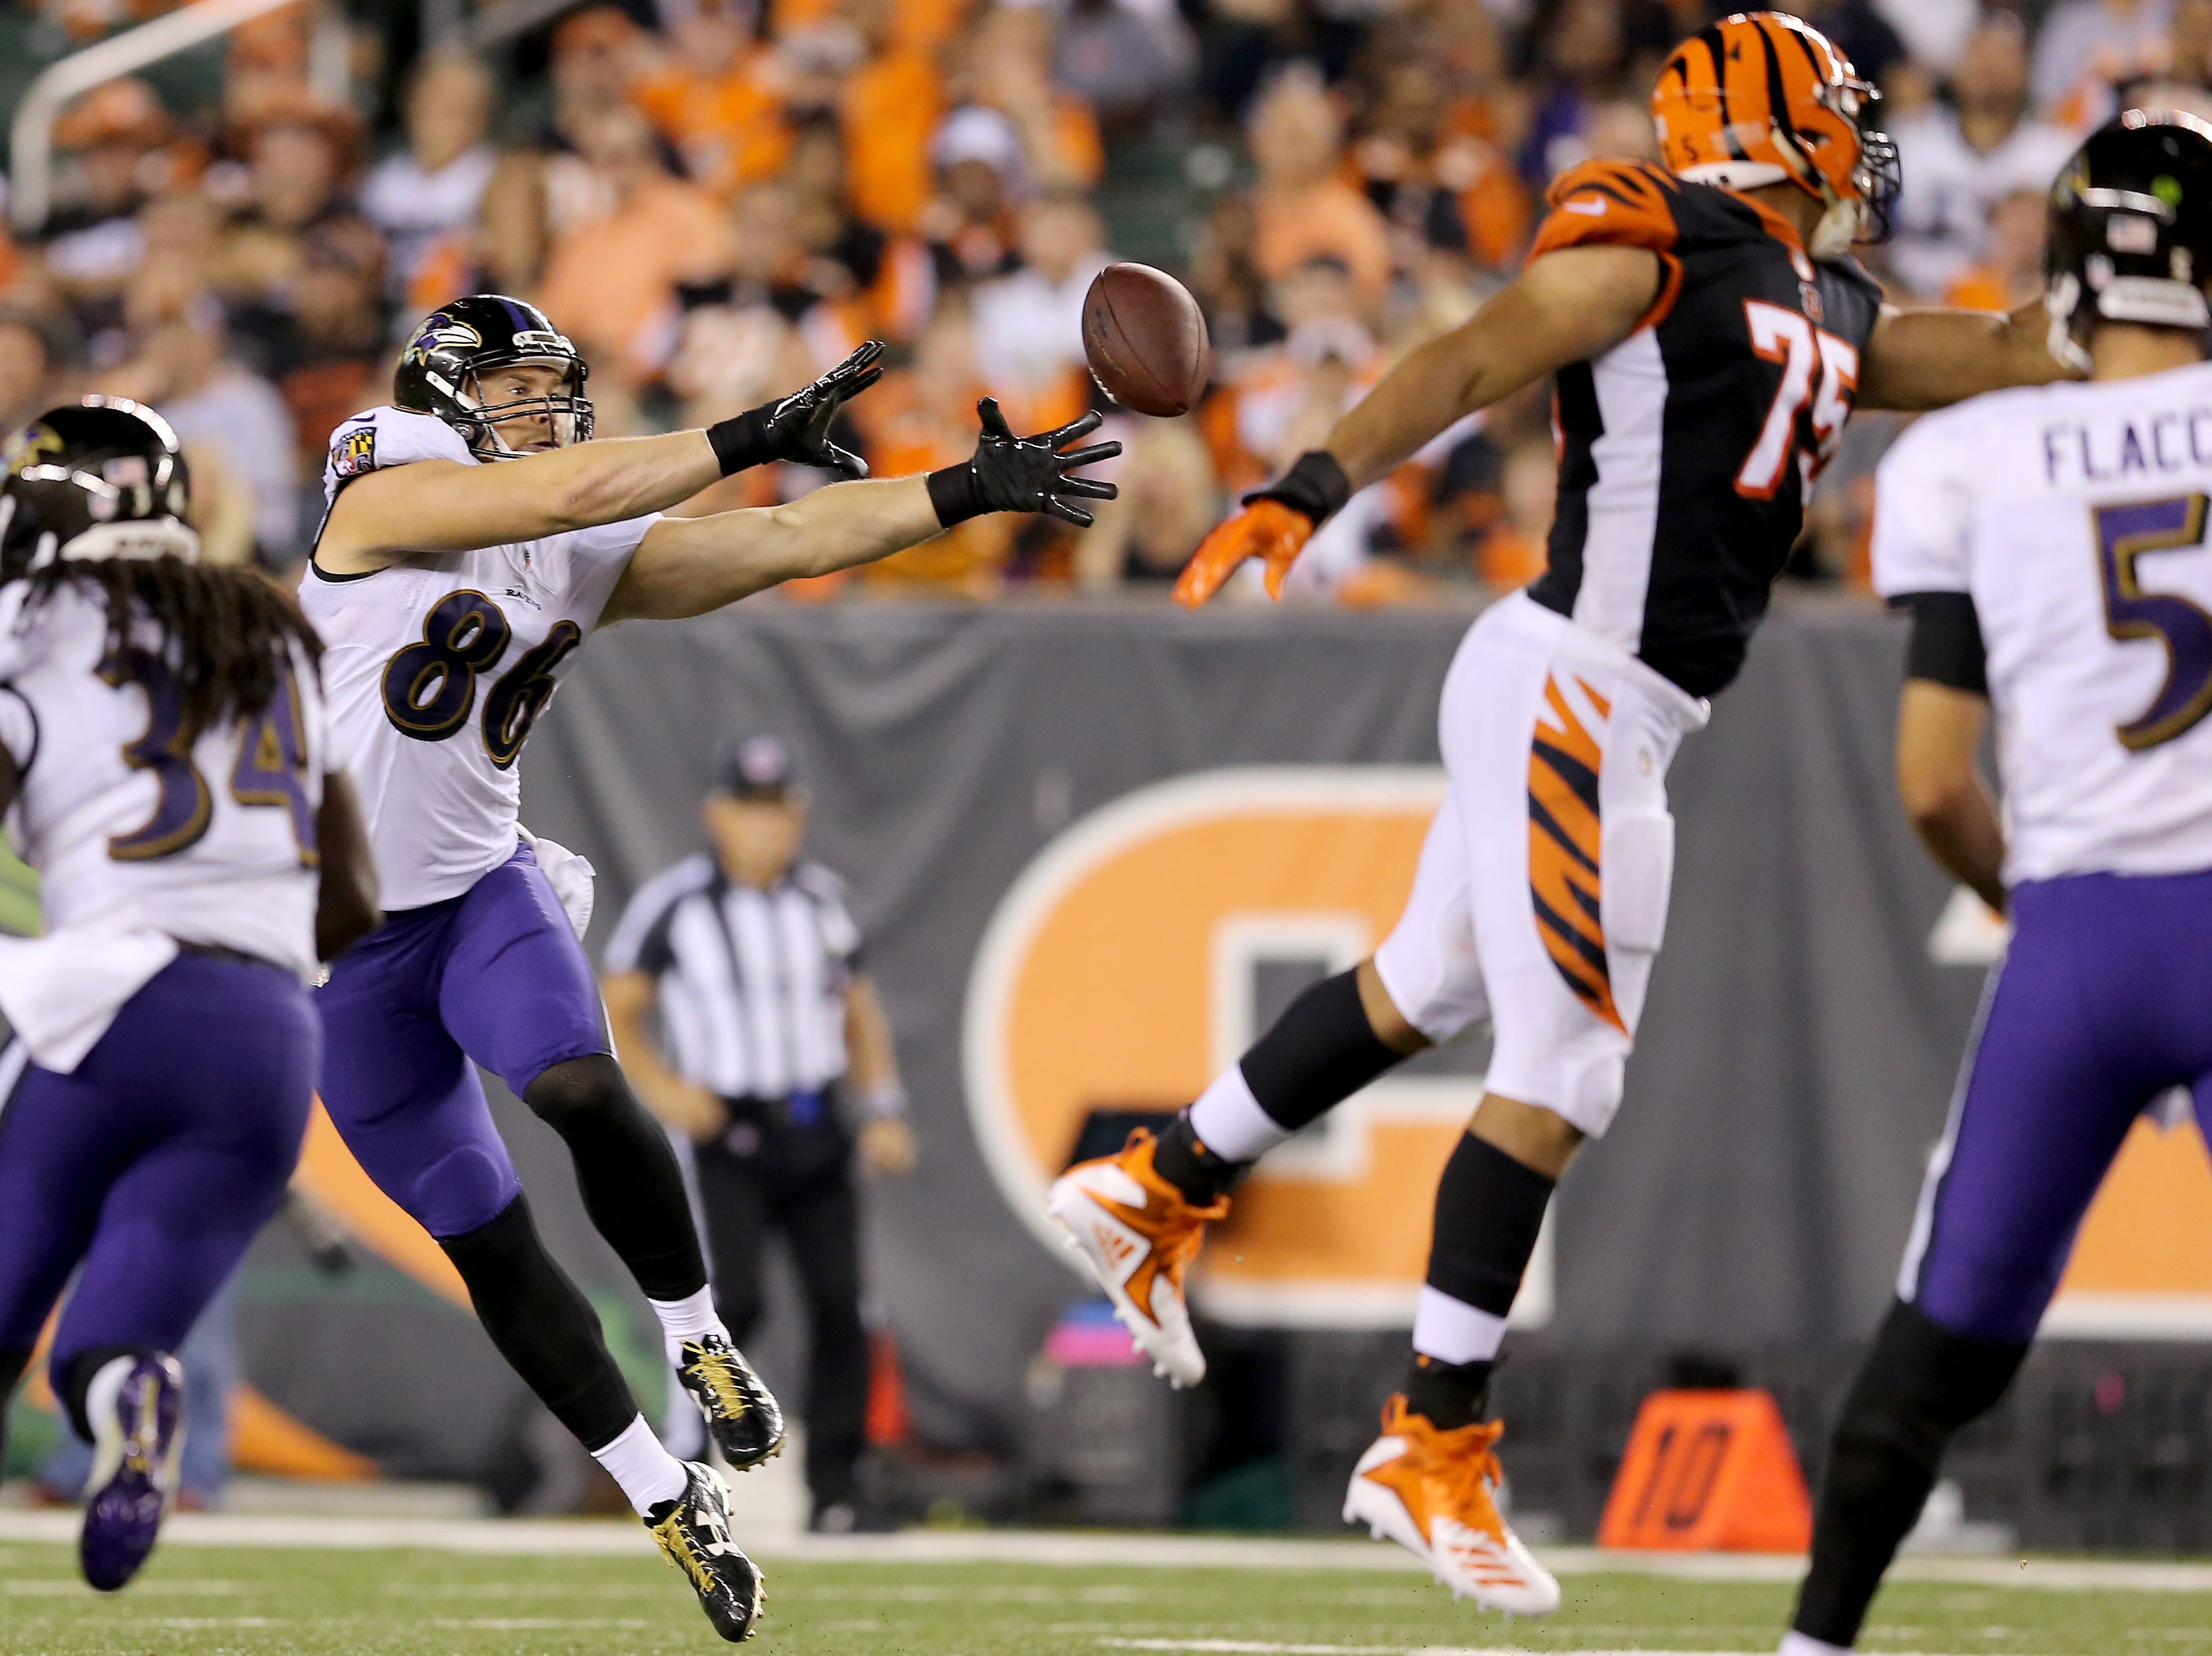 Baltimore Ravens tight end Nick Boyle (86) reaches back for a pass thrown behind him in the third quarter during the Week 2 NFL football game between the Baltimore Ravens and the Cincinnati Bengals, Friday, Sept. 14, 2018, Paul Brown Stadium in Cincinnati. Cincinnati won 34-23.